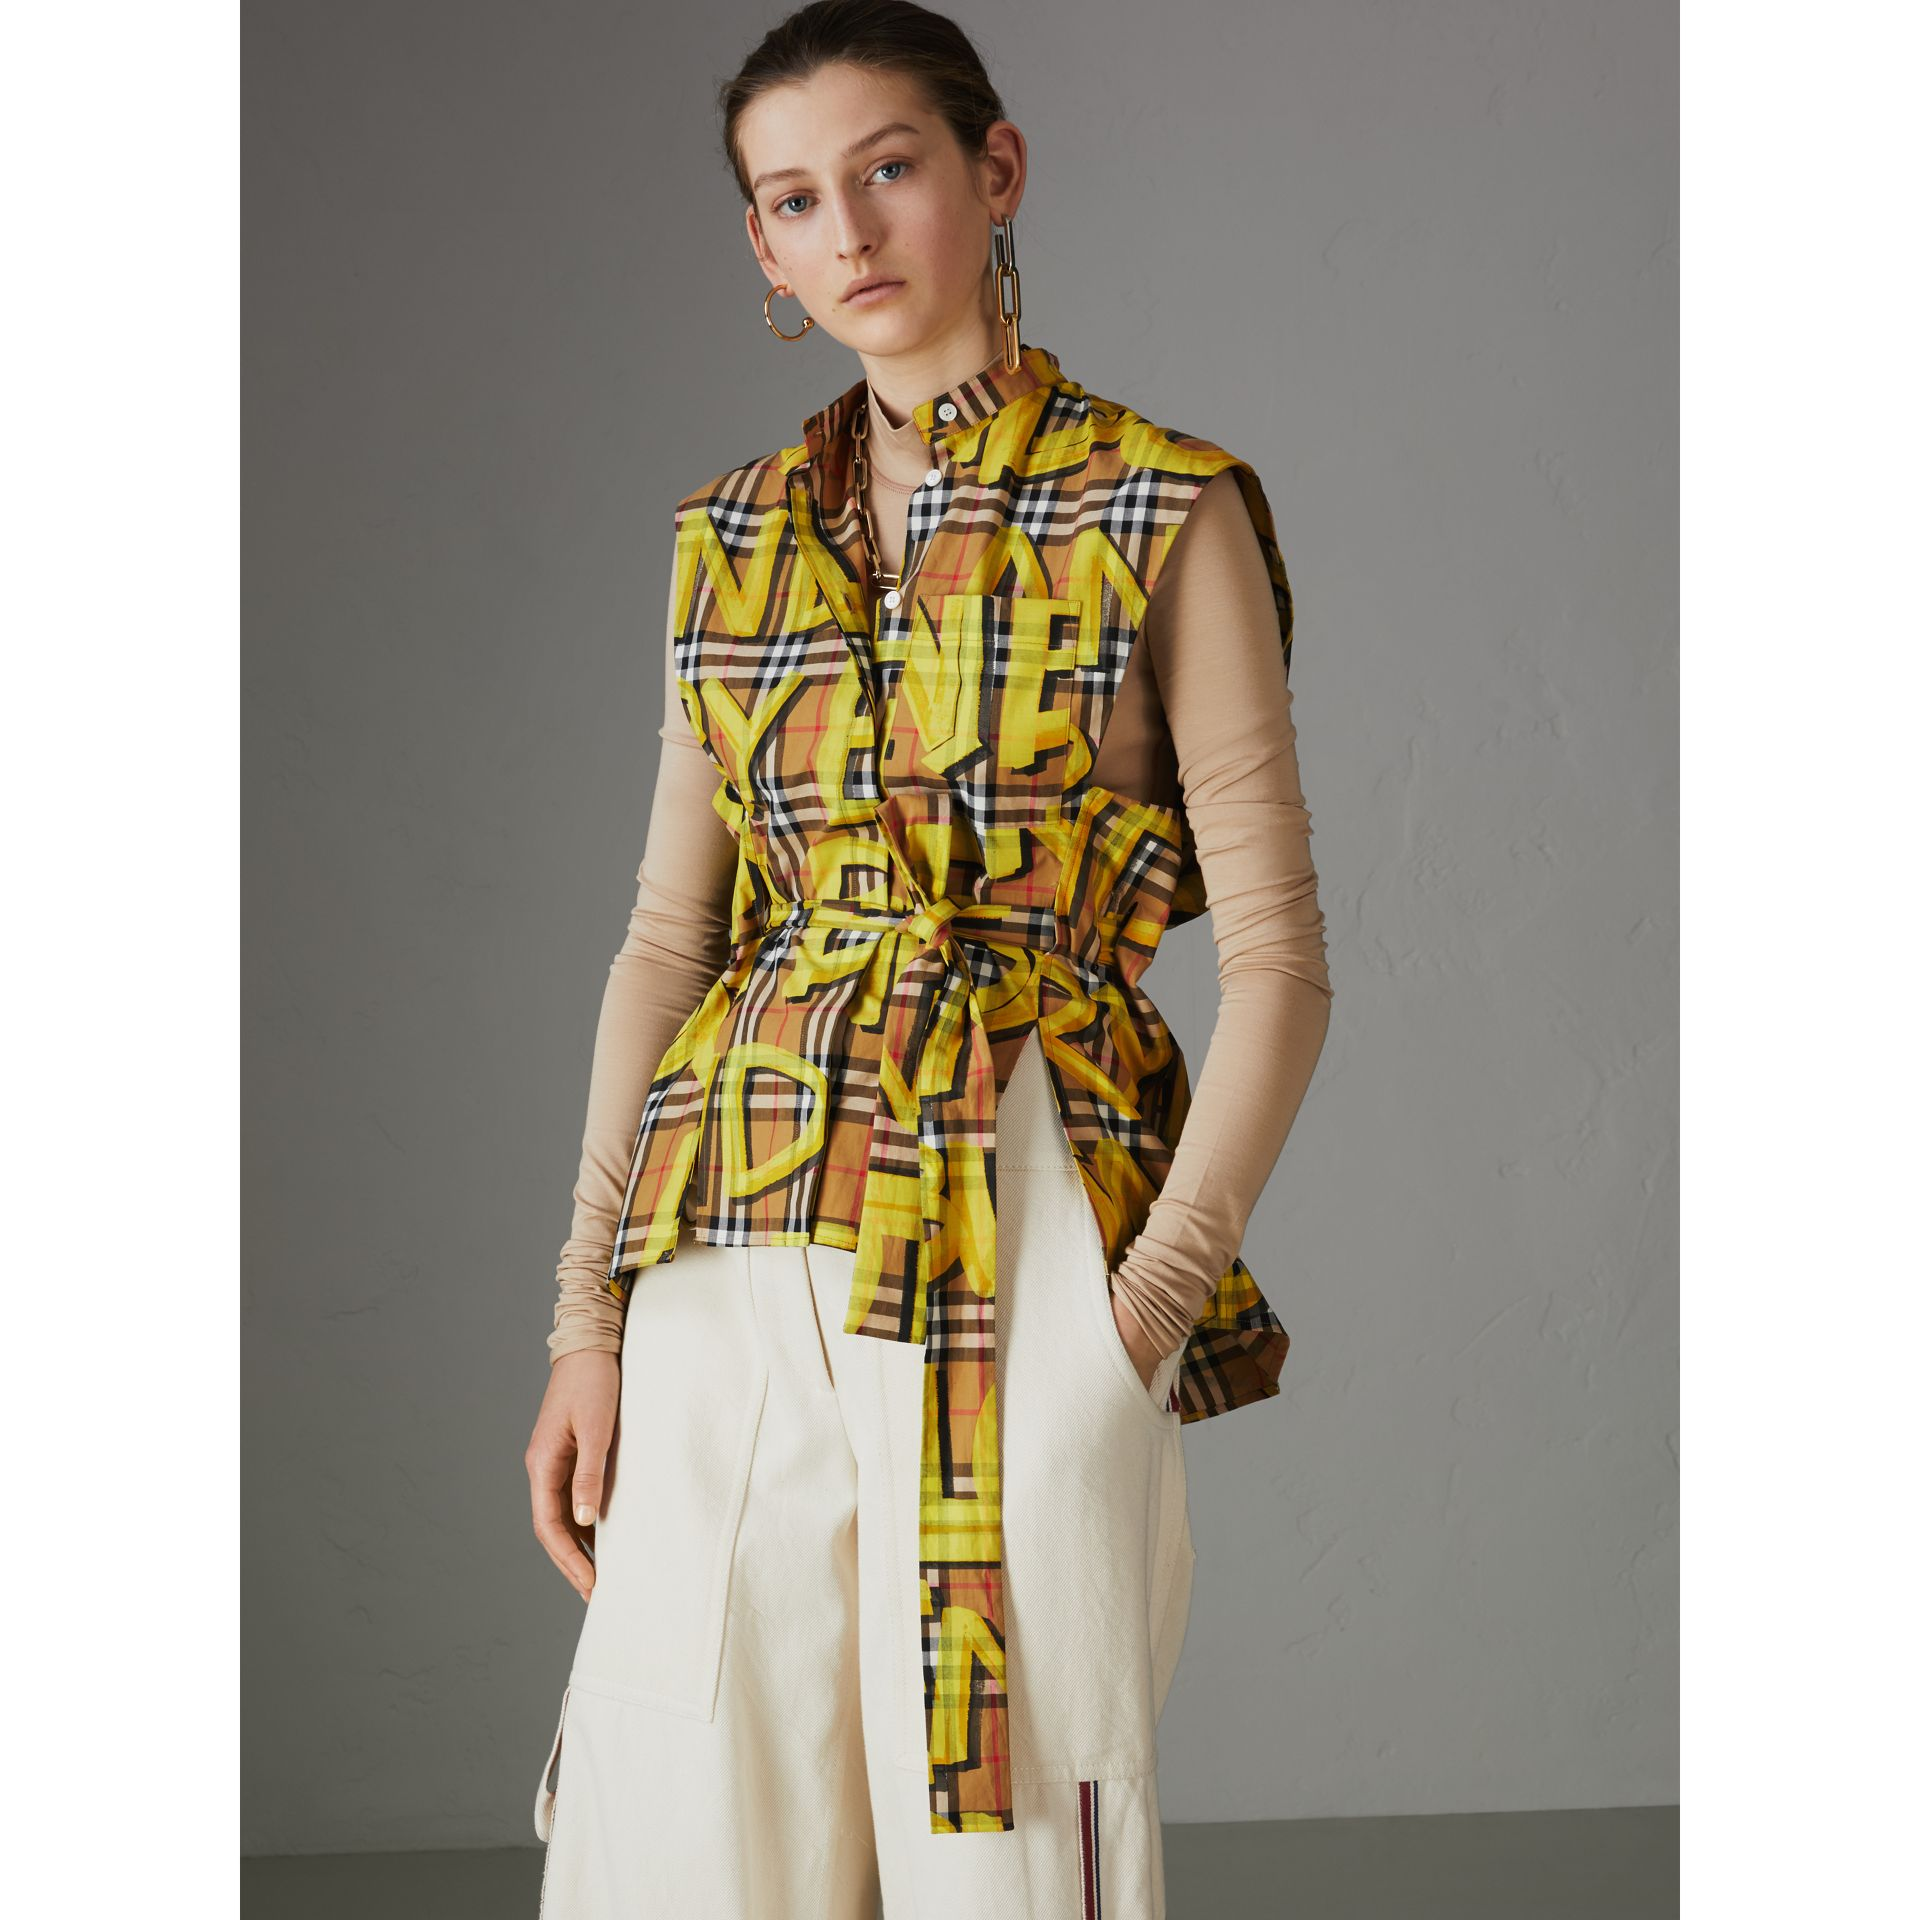 Sleeveless Graffiti Print Vintage Check Cotton Shirt in Bright Yellow - Women | Burberry Australia - gallery image 4